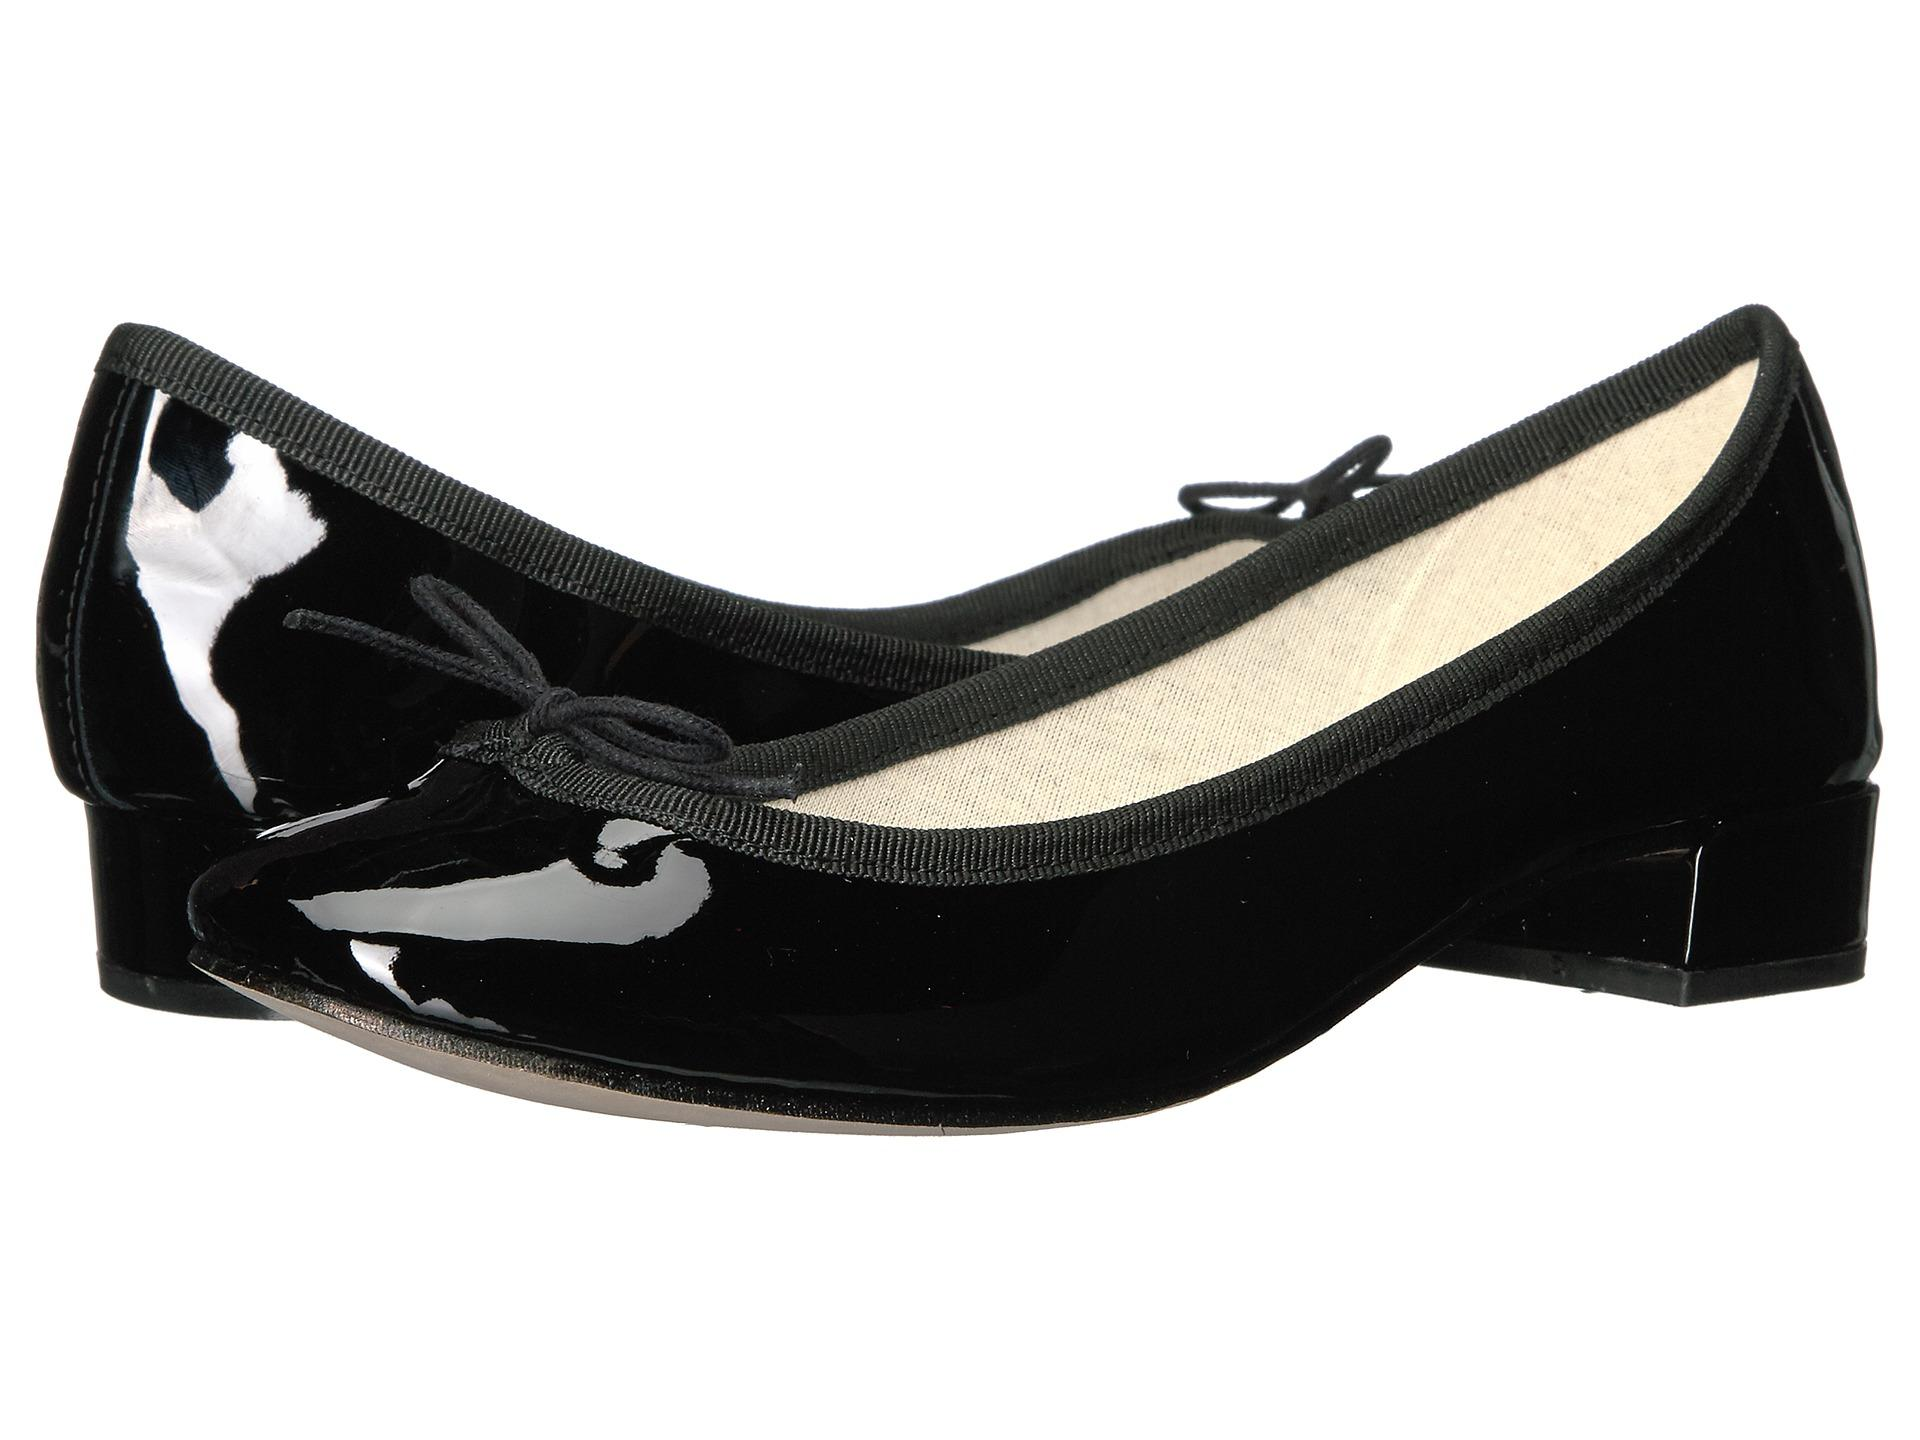 Buy Repetto Shoes